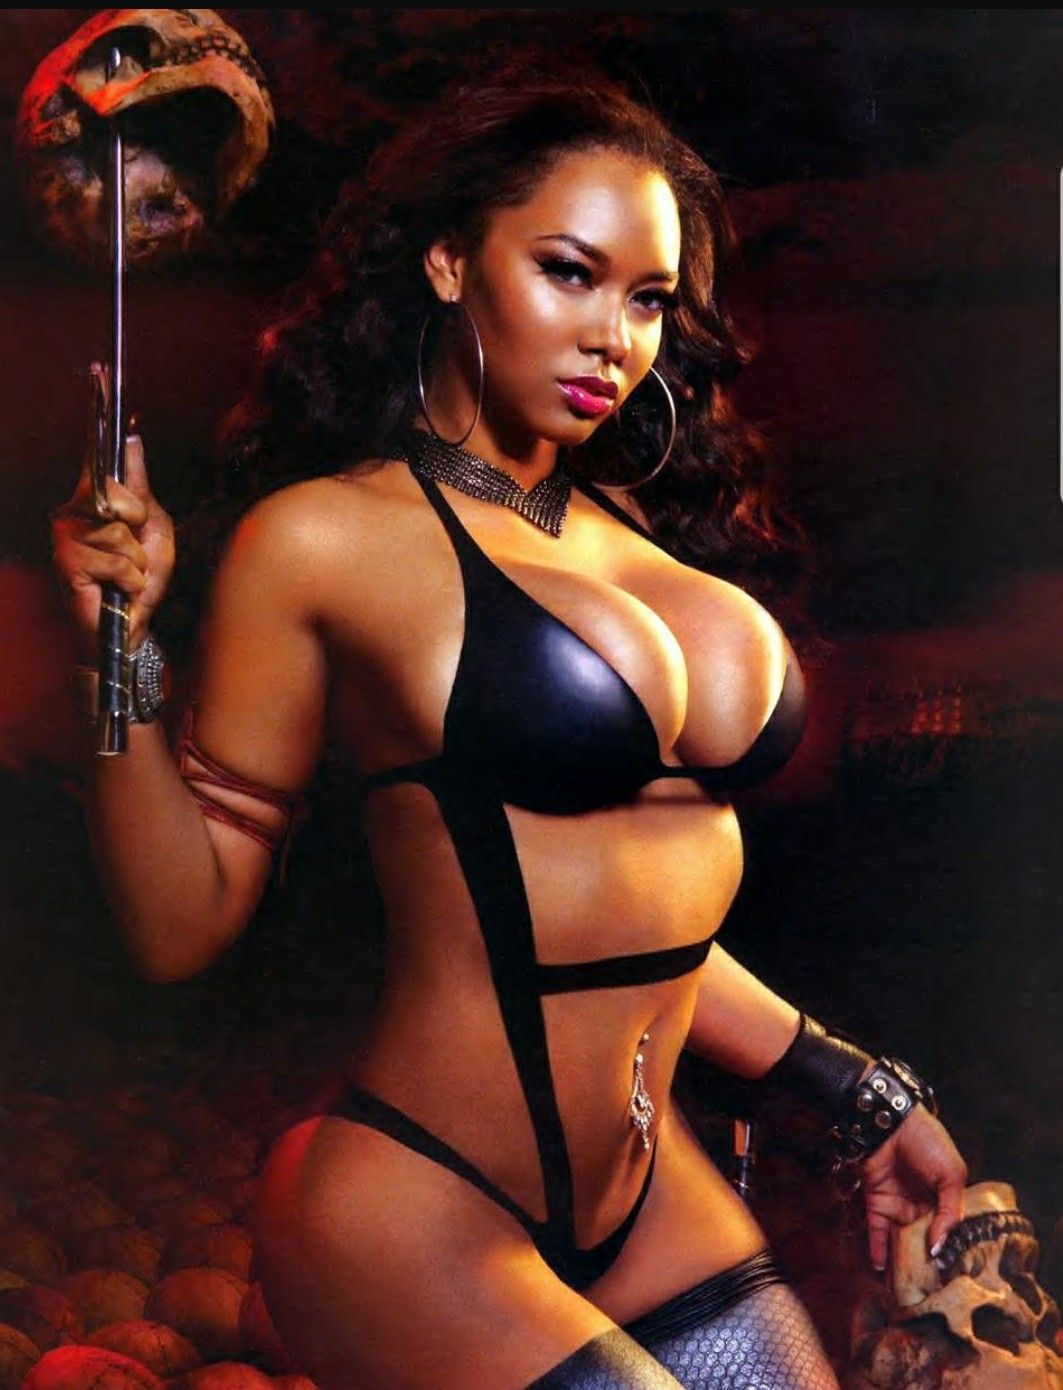 Black Women Into Leather And Bdsm